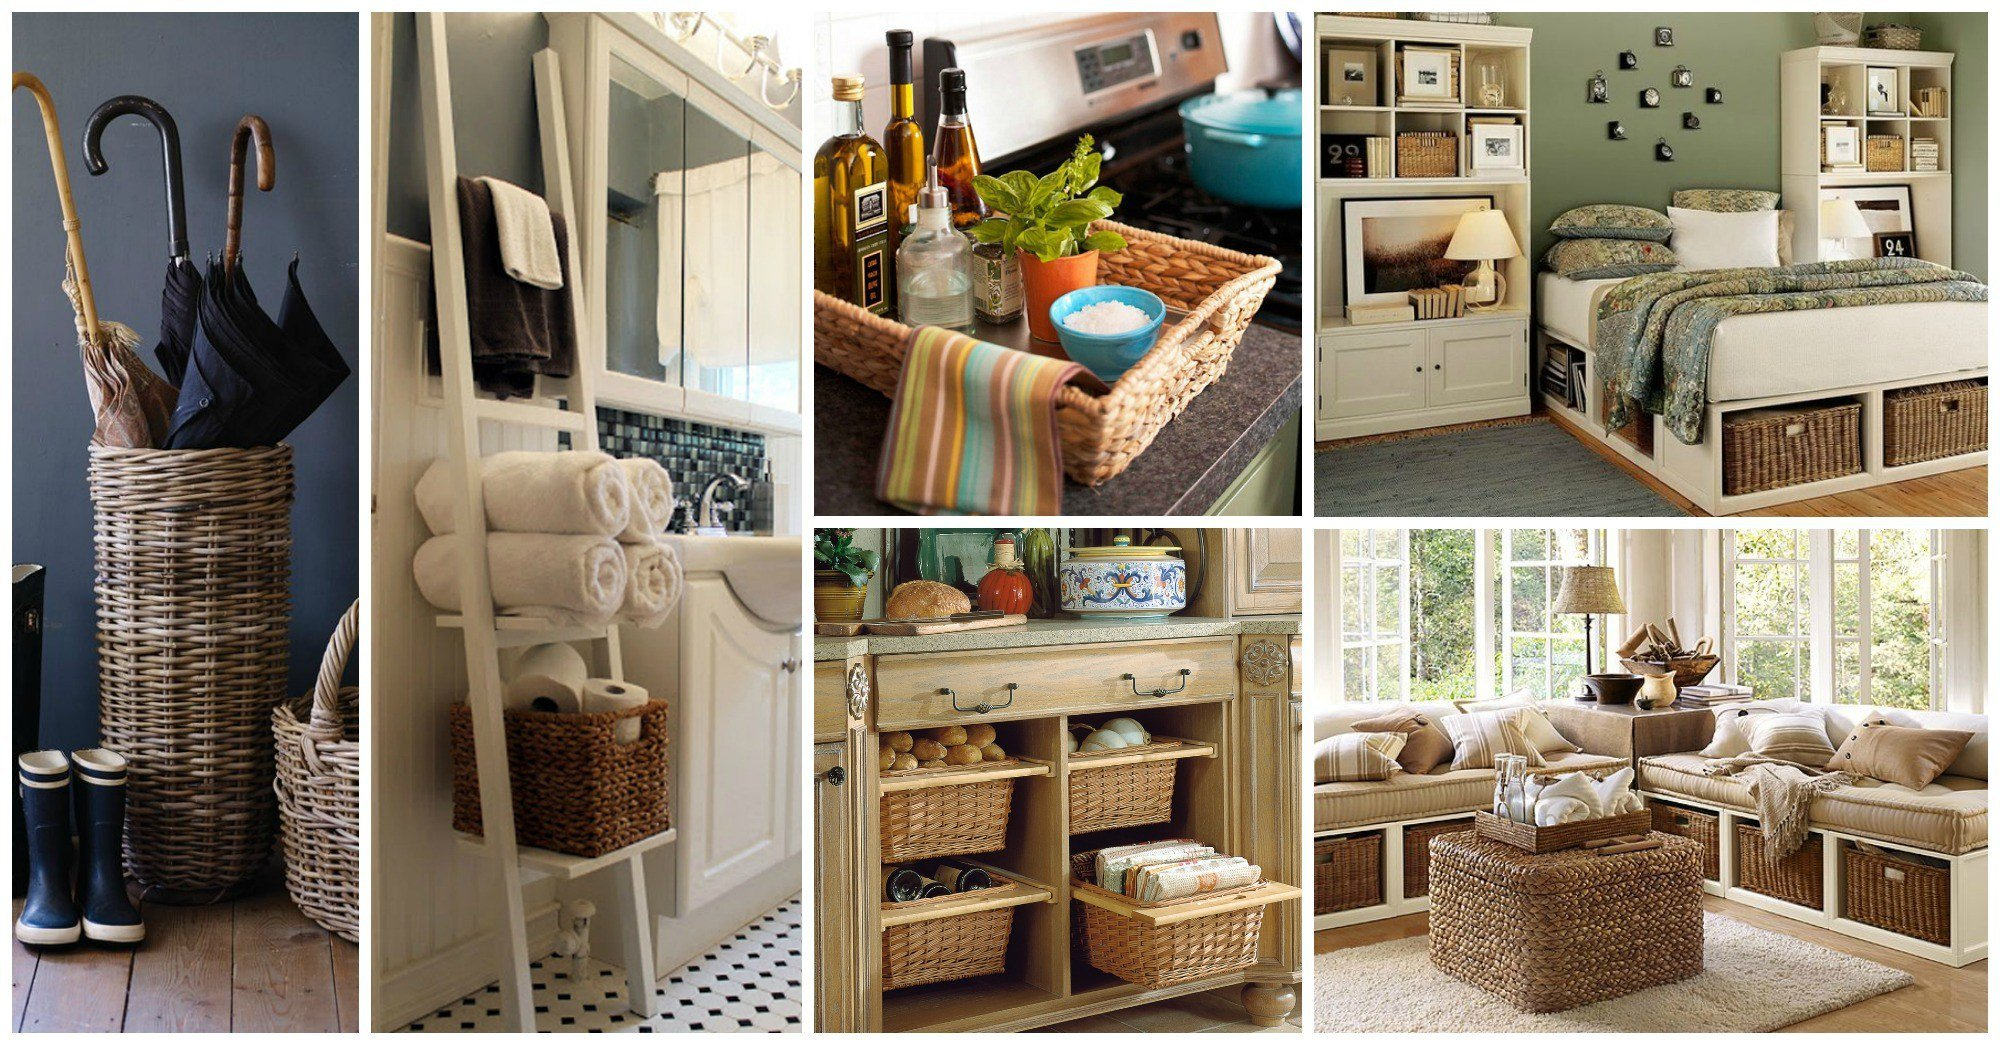 15 awesome ways to incorporate wicker baskets in your interior. Black Bedroom Furniture Sets. Home Design Ideas